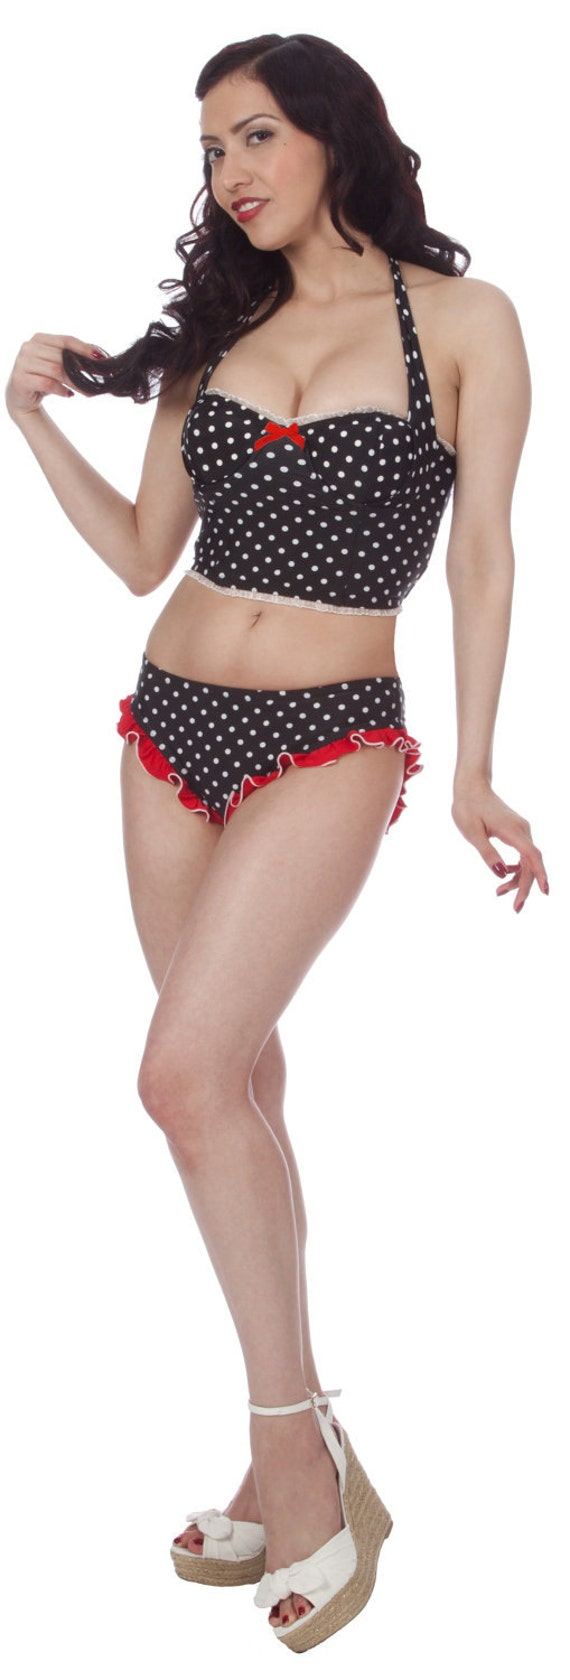 Lindy Halter Strap Polka Dotted Swim Bustier in Black/White (XS-1X)